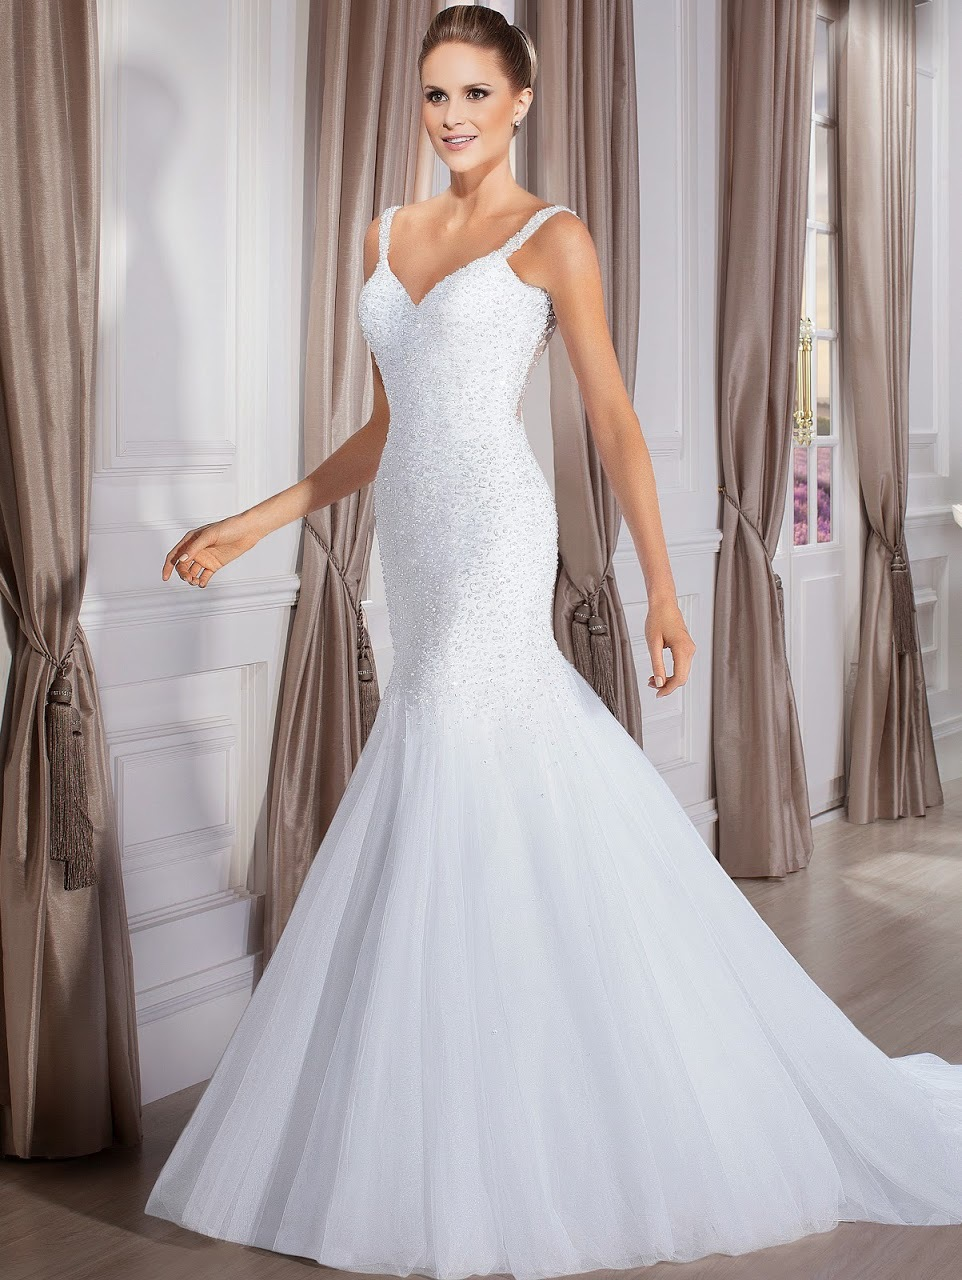 Vestido de noiva sereia spaghetti strap beading white for Tight fitted mermaid wedding dresses